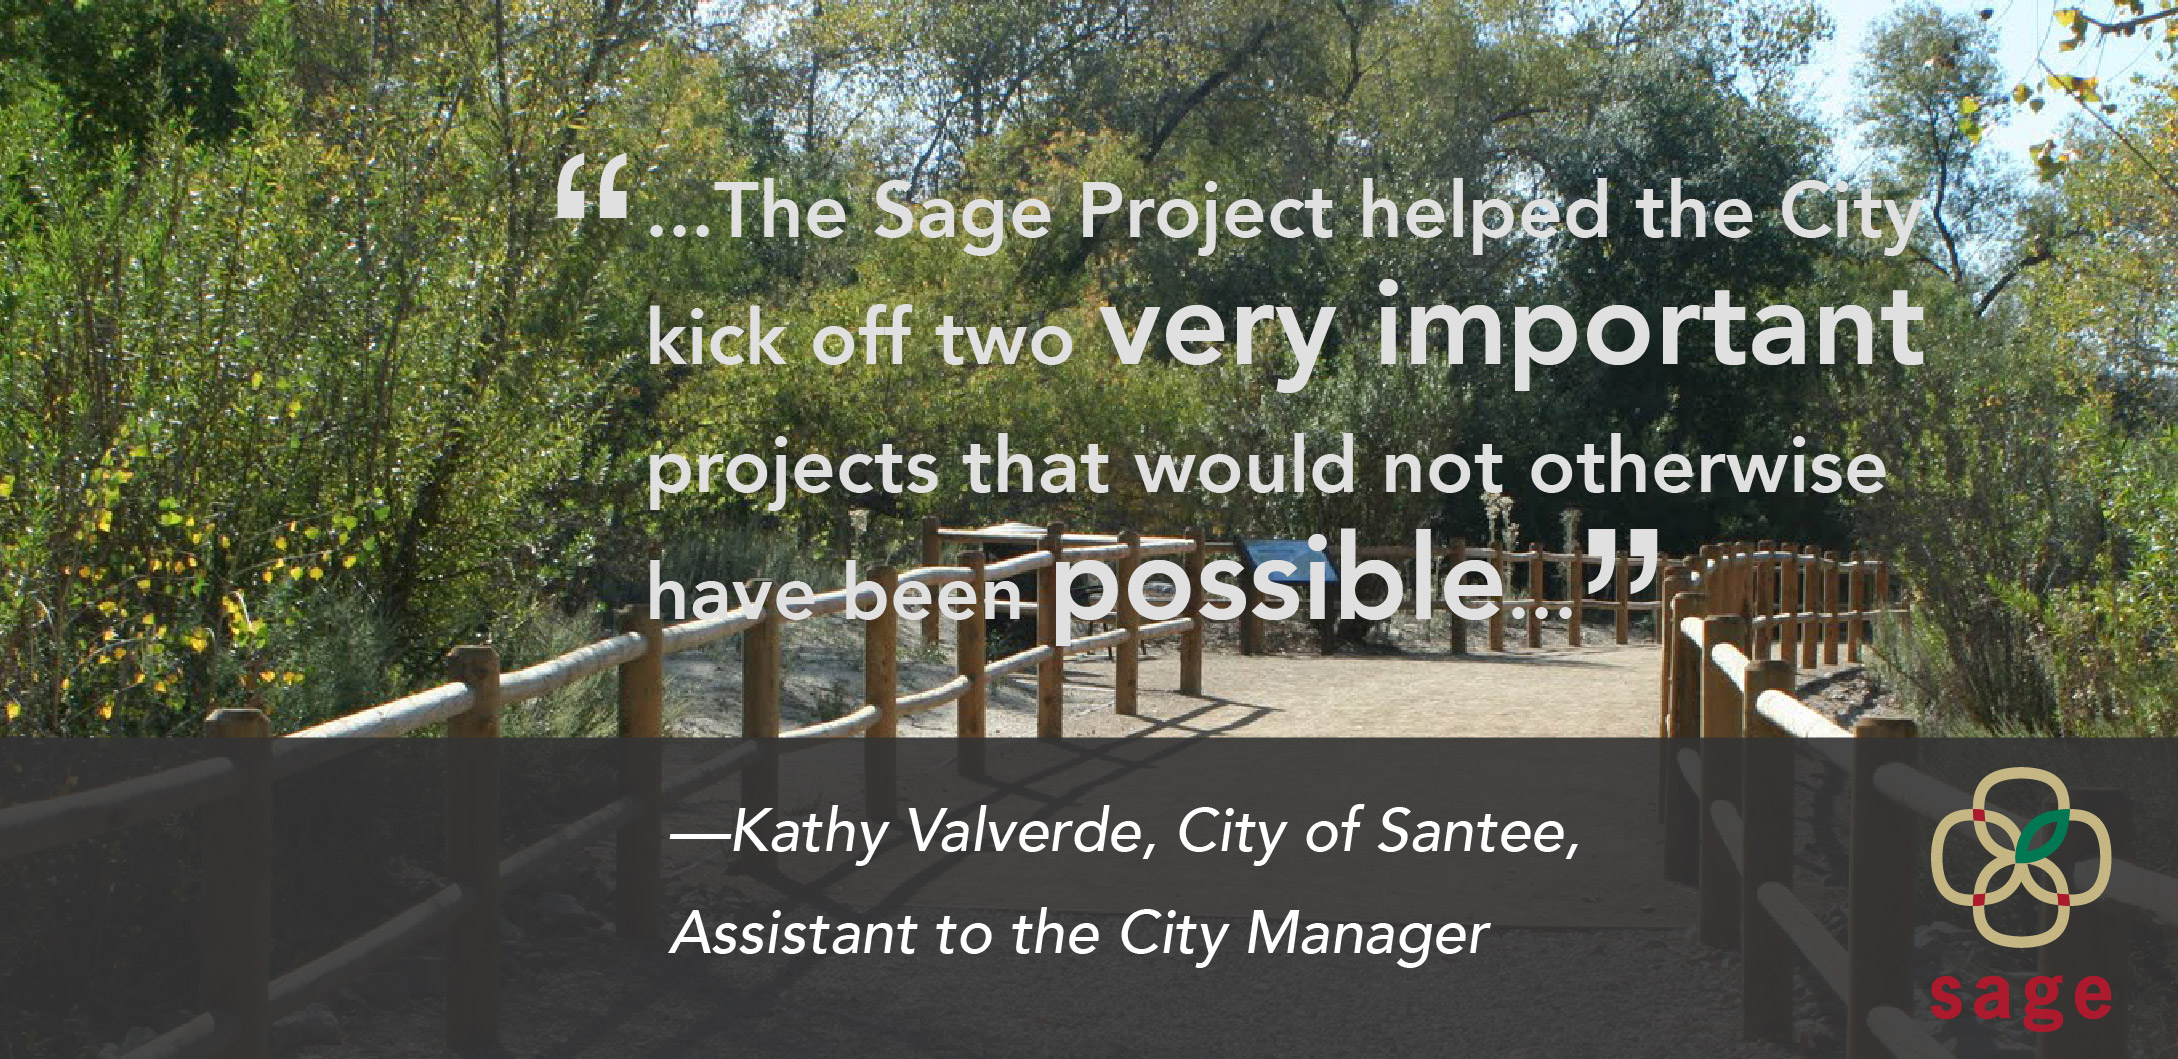 city of santee quote